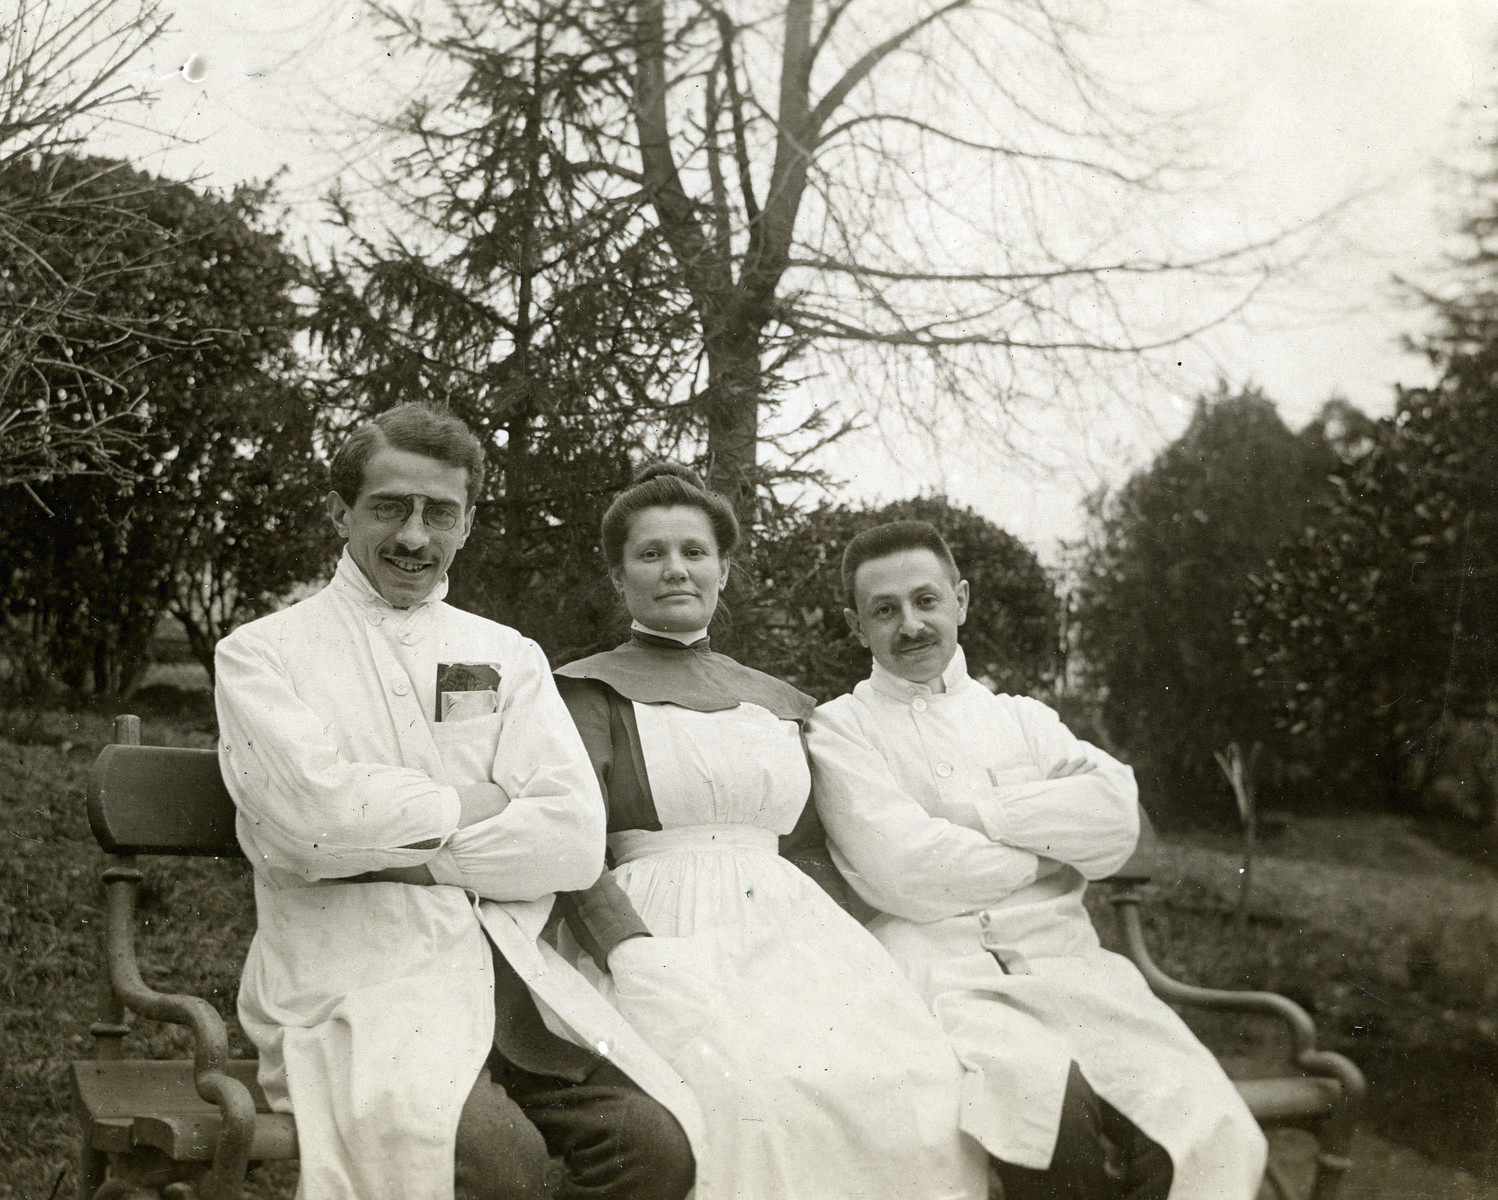 Dr. Josef Kohn (right) poses with two colleagues from the Sanatorium Merano